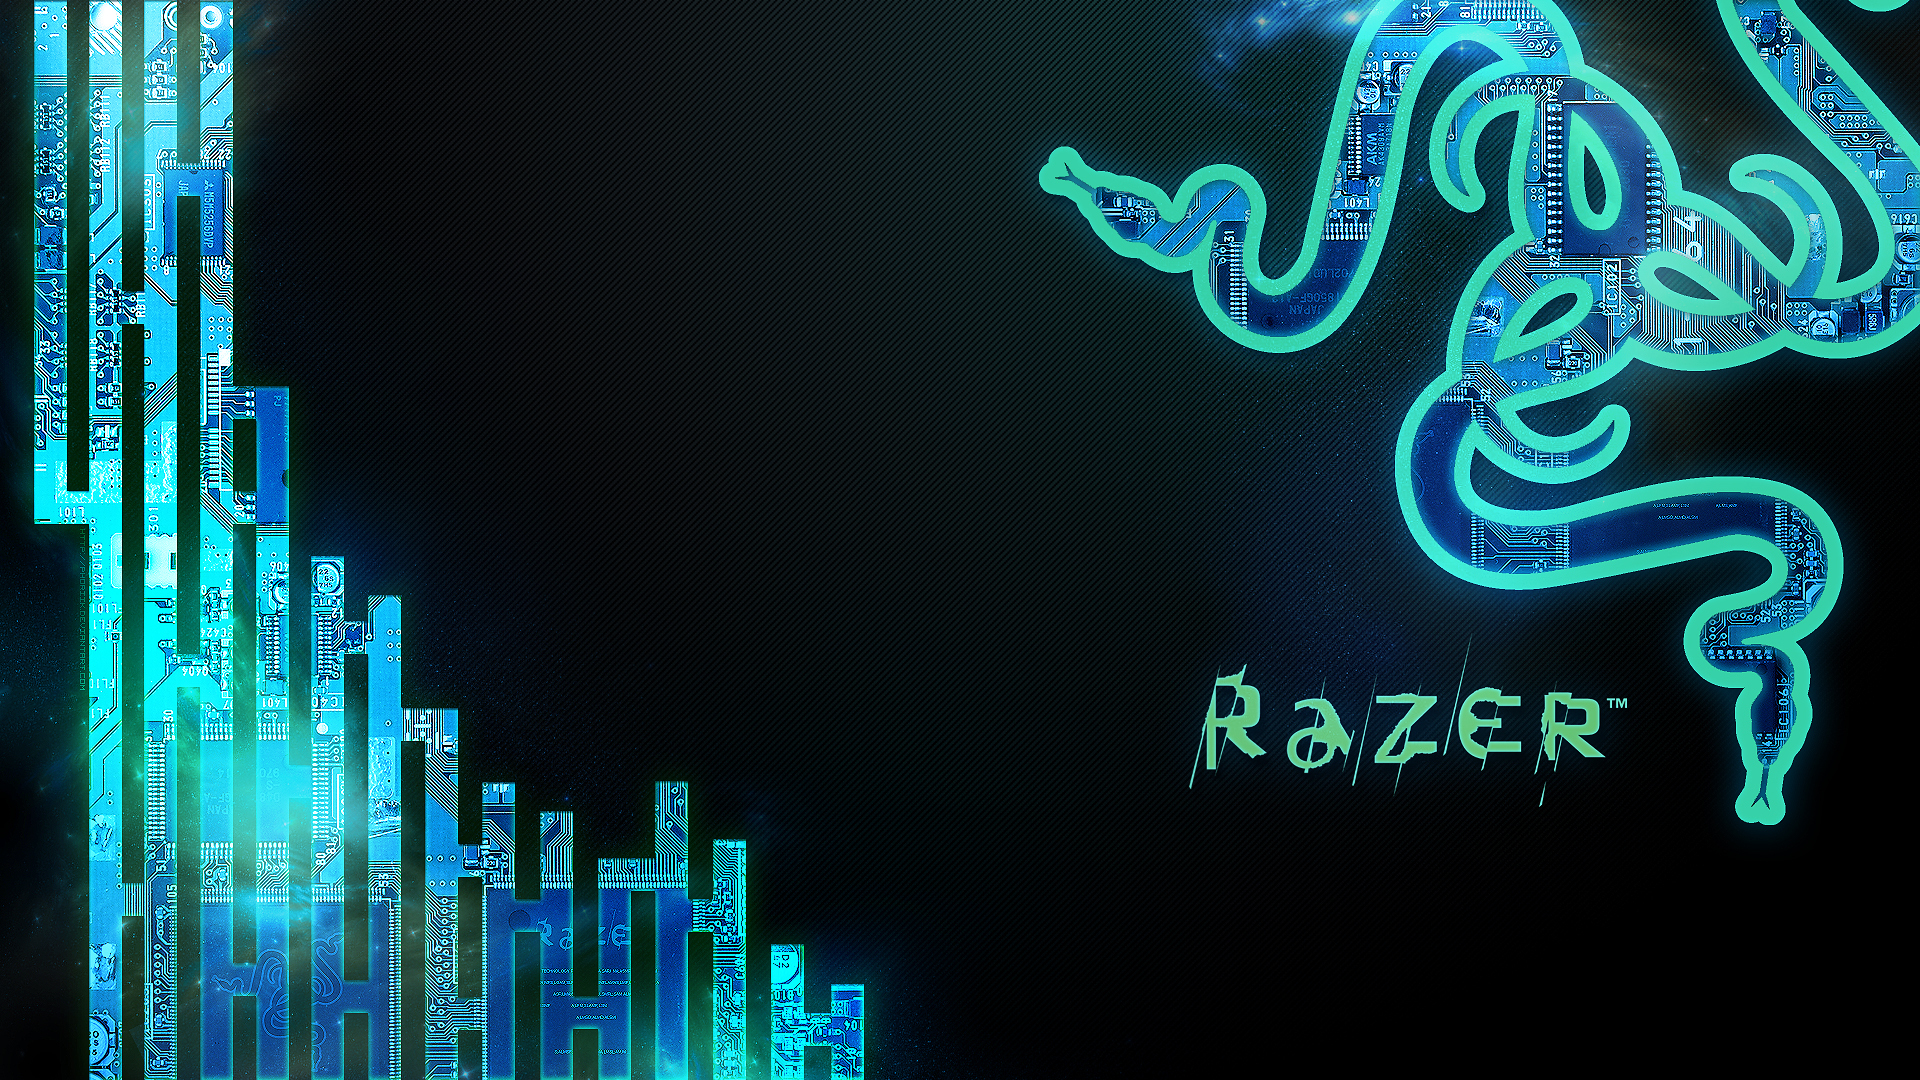 Free Download Technology Razer Wallpaper 1920x1080 For Your